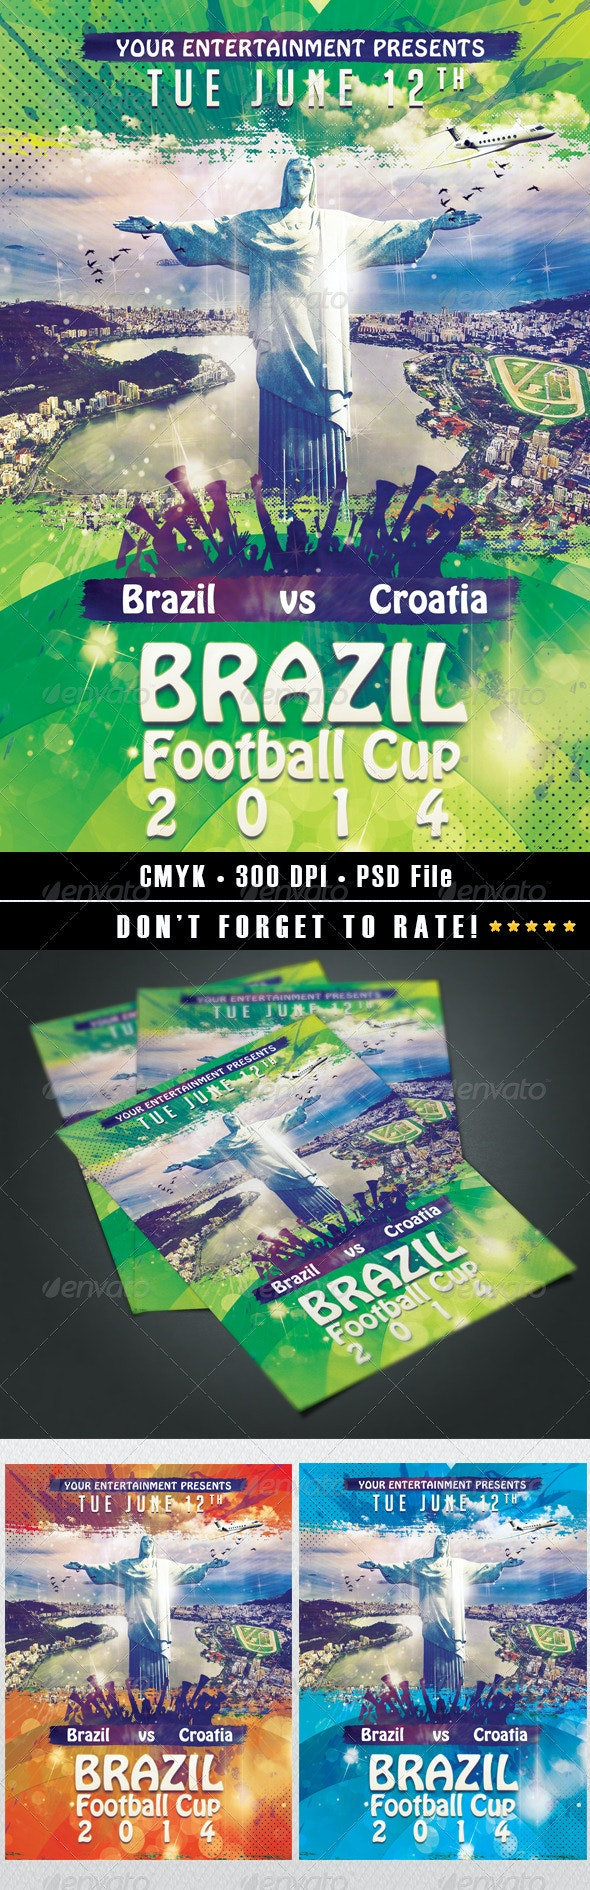 Brazil Football Cup 2014 - Sports Events